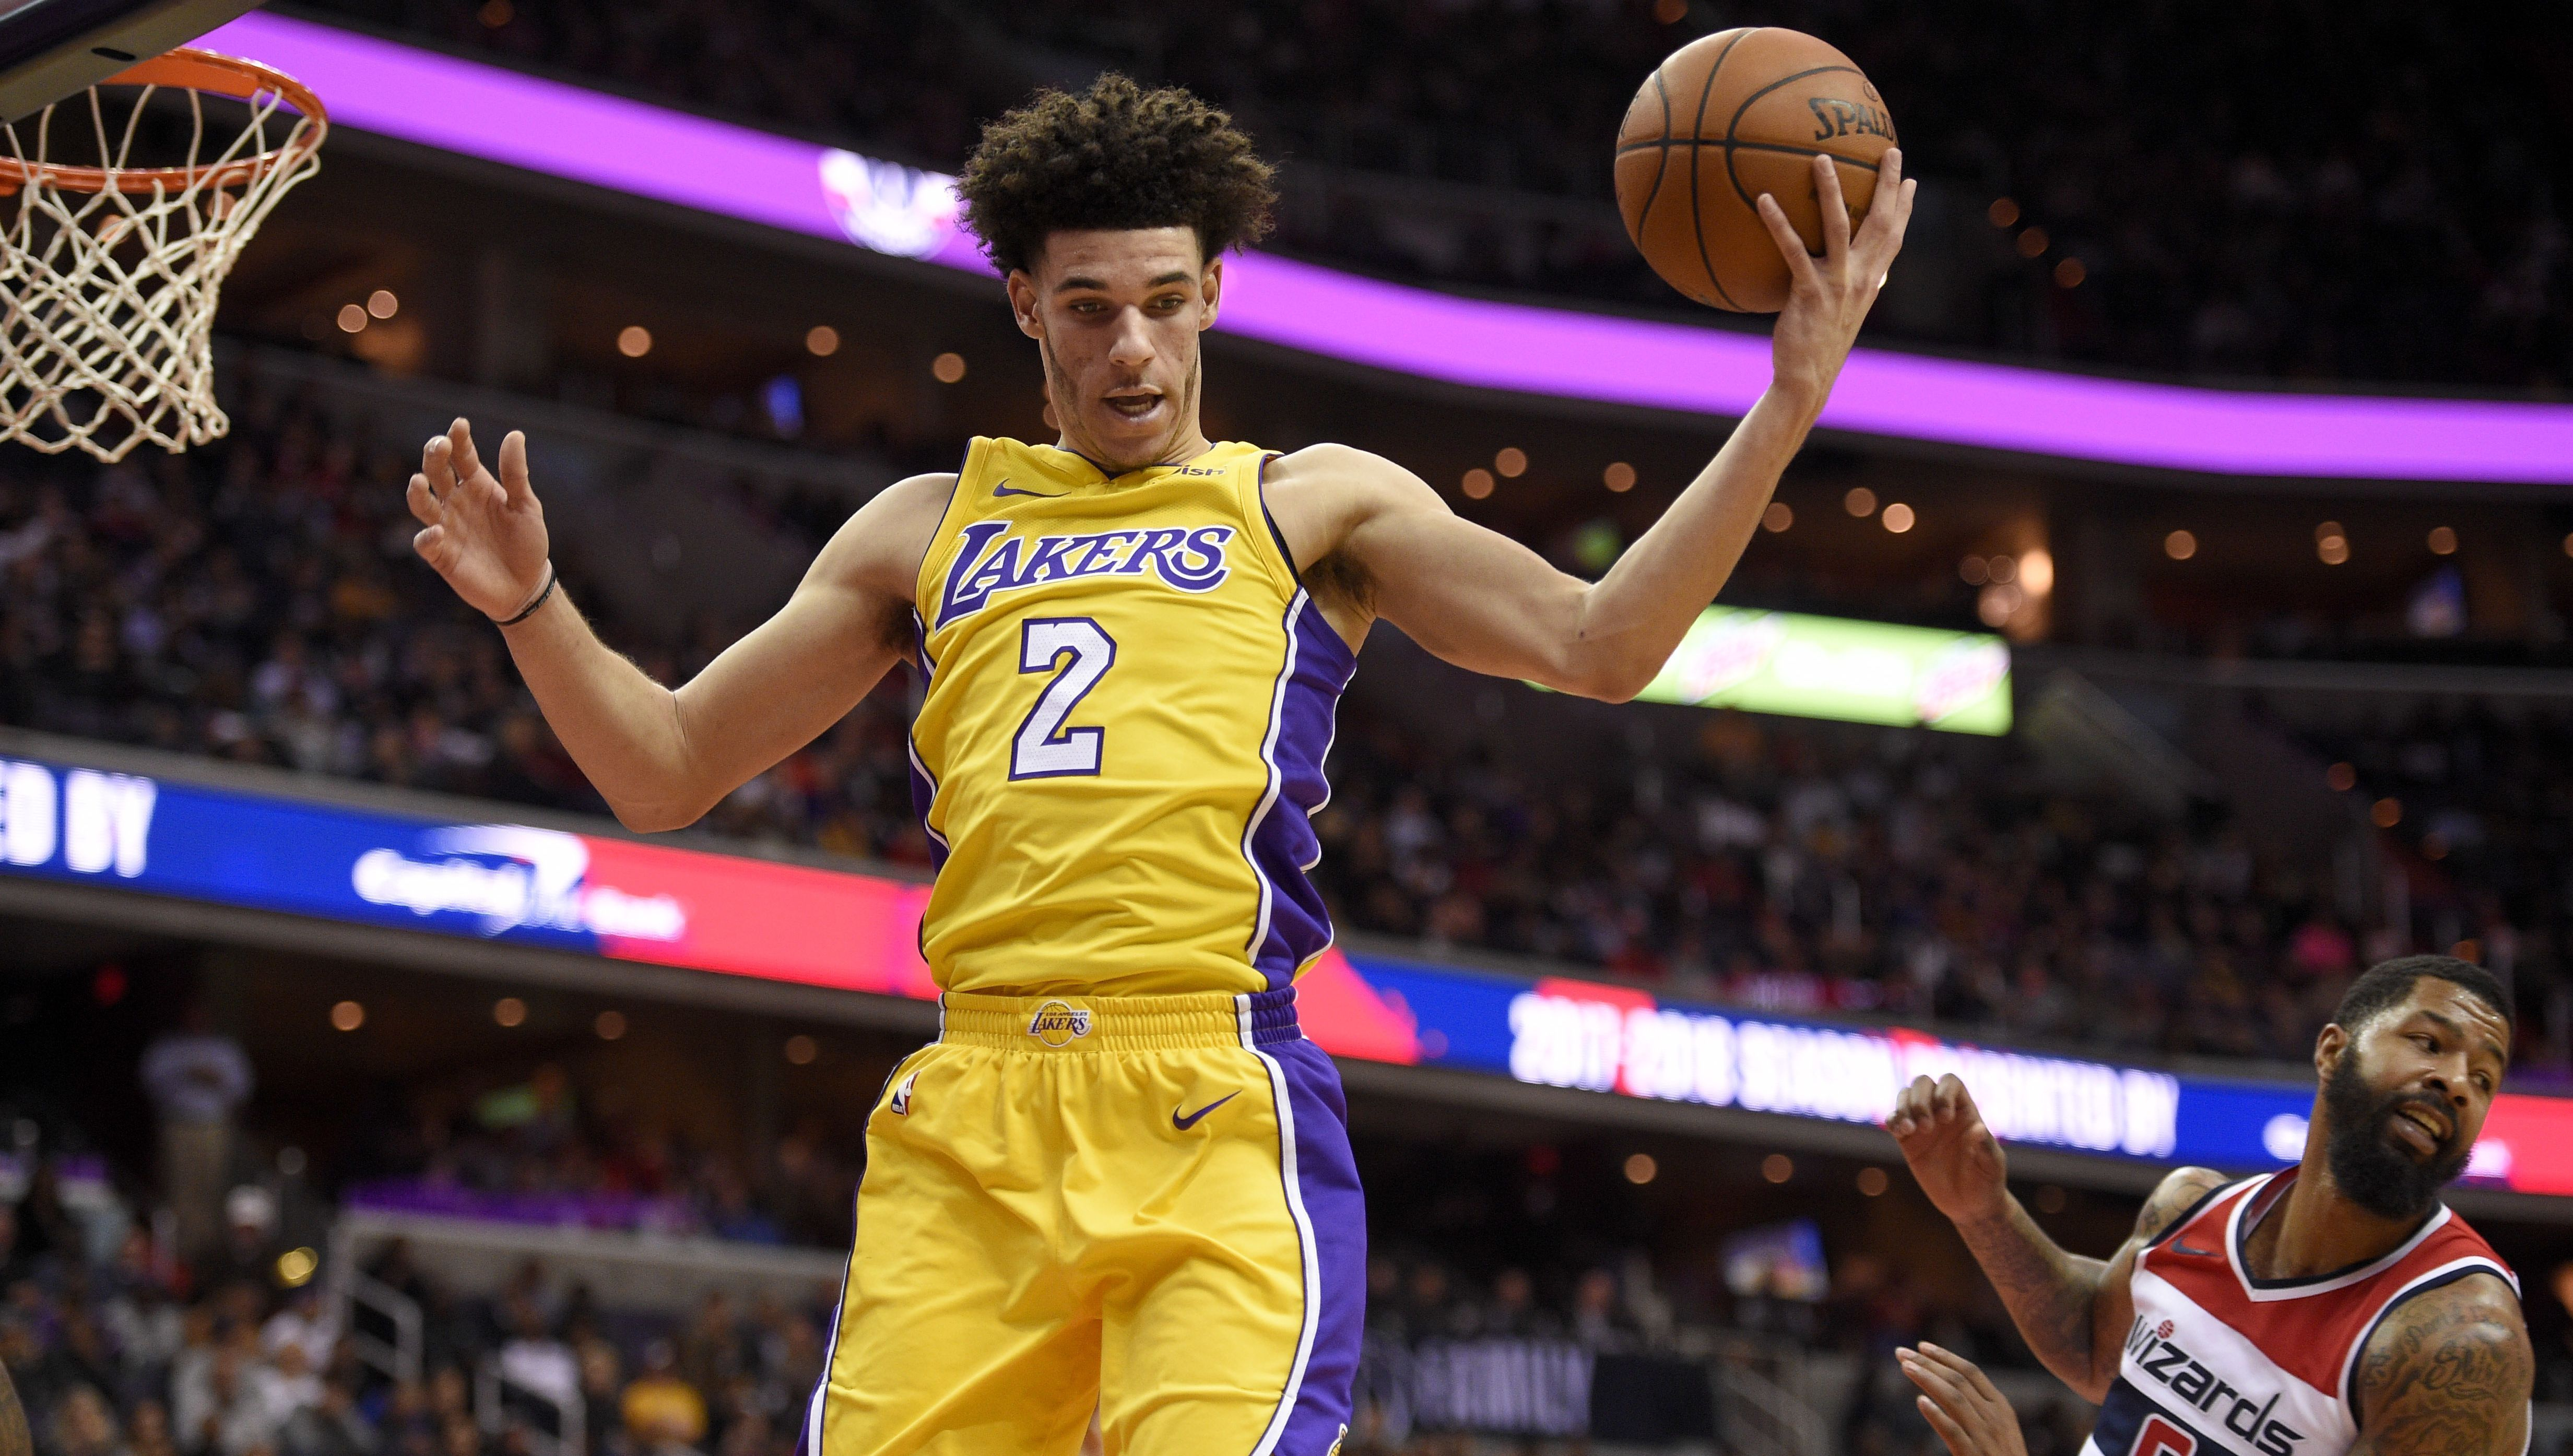 Lonzo Ball facing an unfair level of scrutiny sports